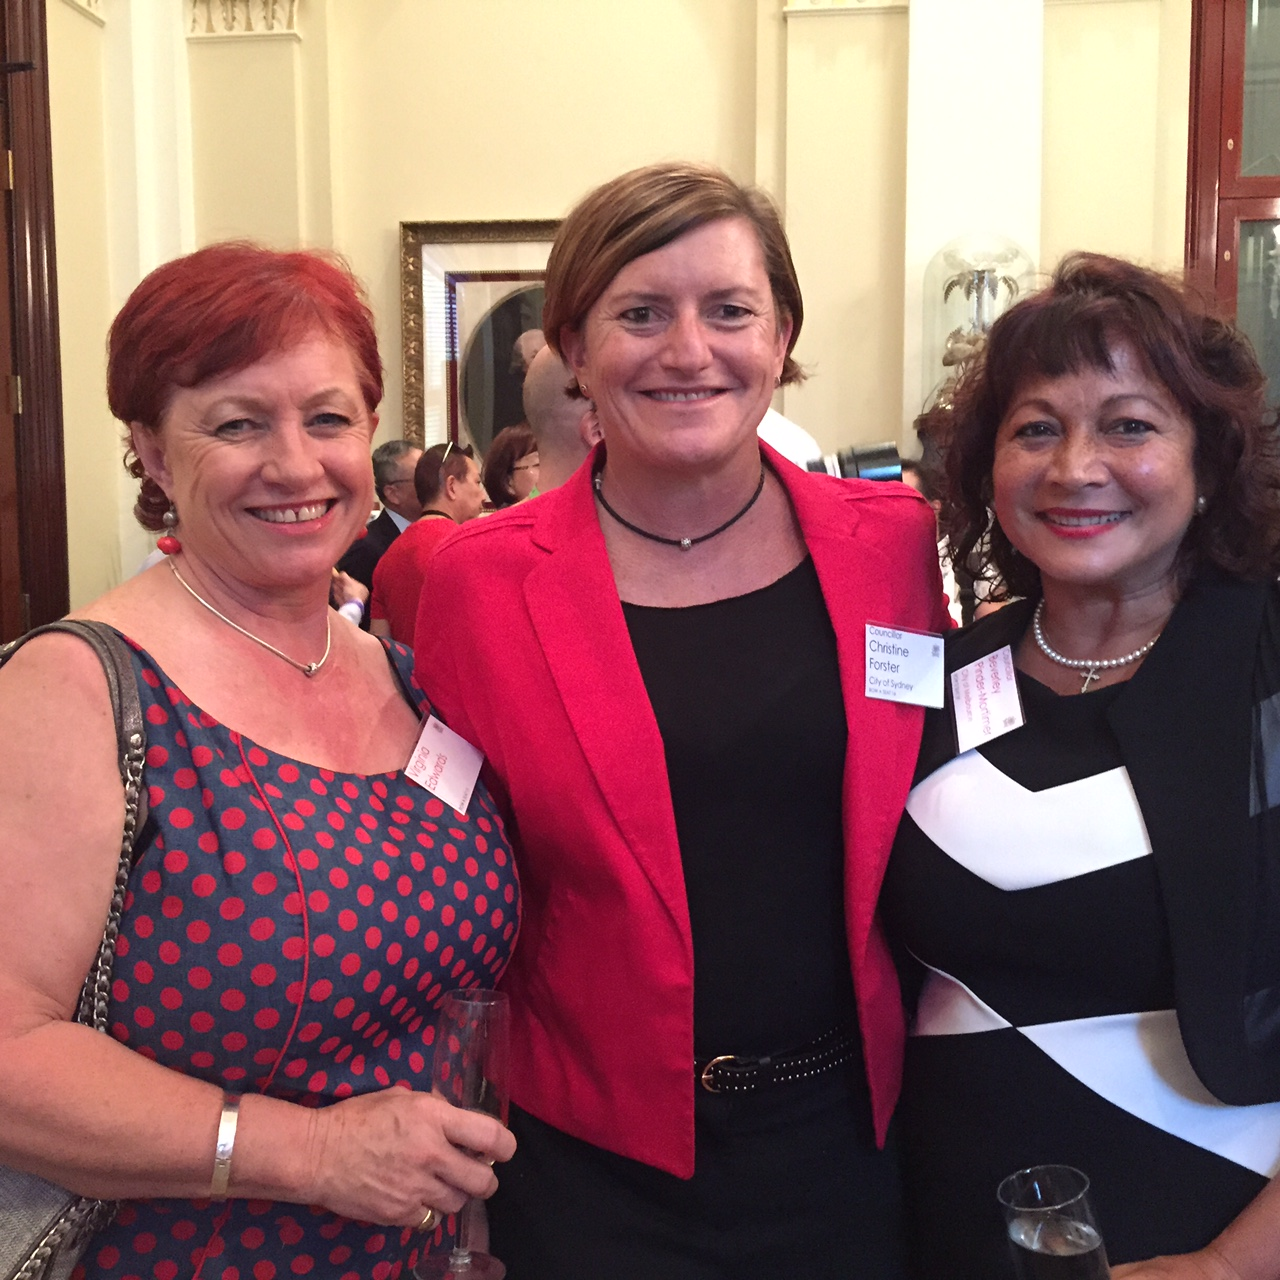 Christine Forster, Virginia Edwards & Beverly Pinder-Mortimer @ CNY Reception 22-02-15